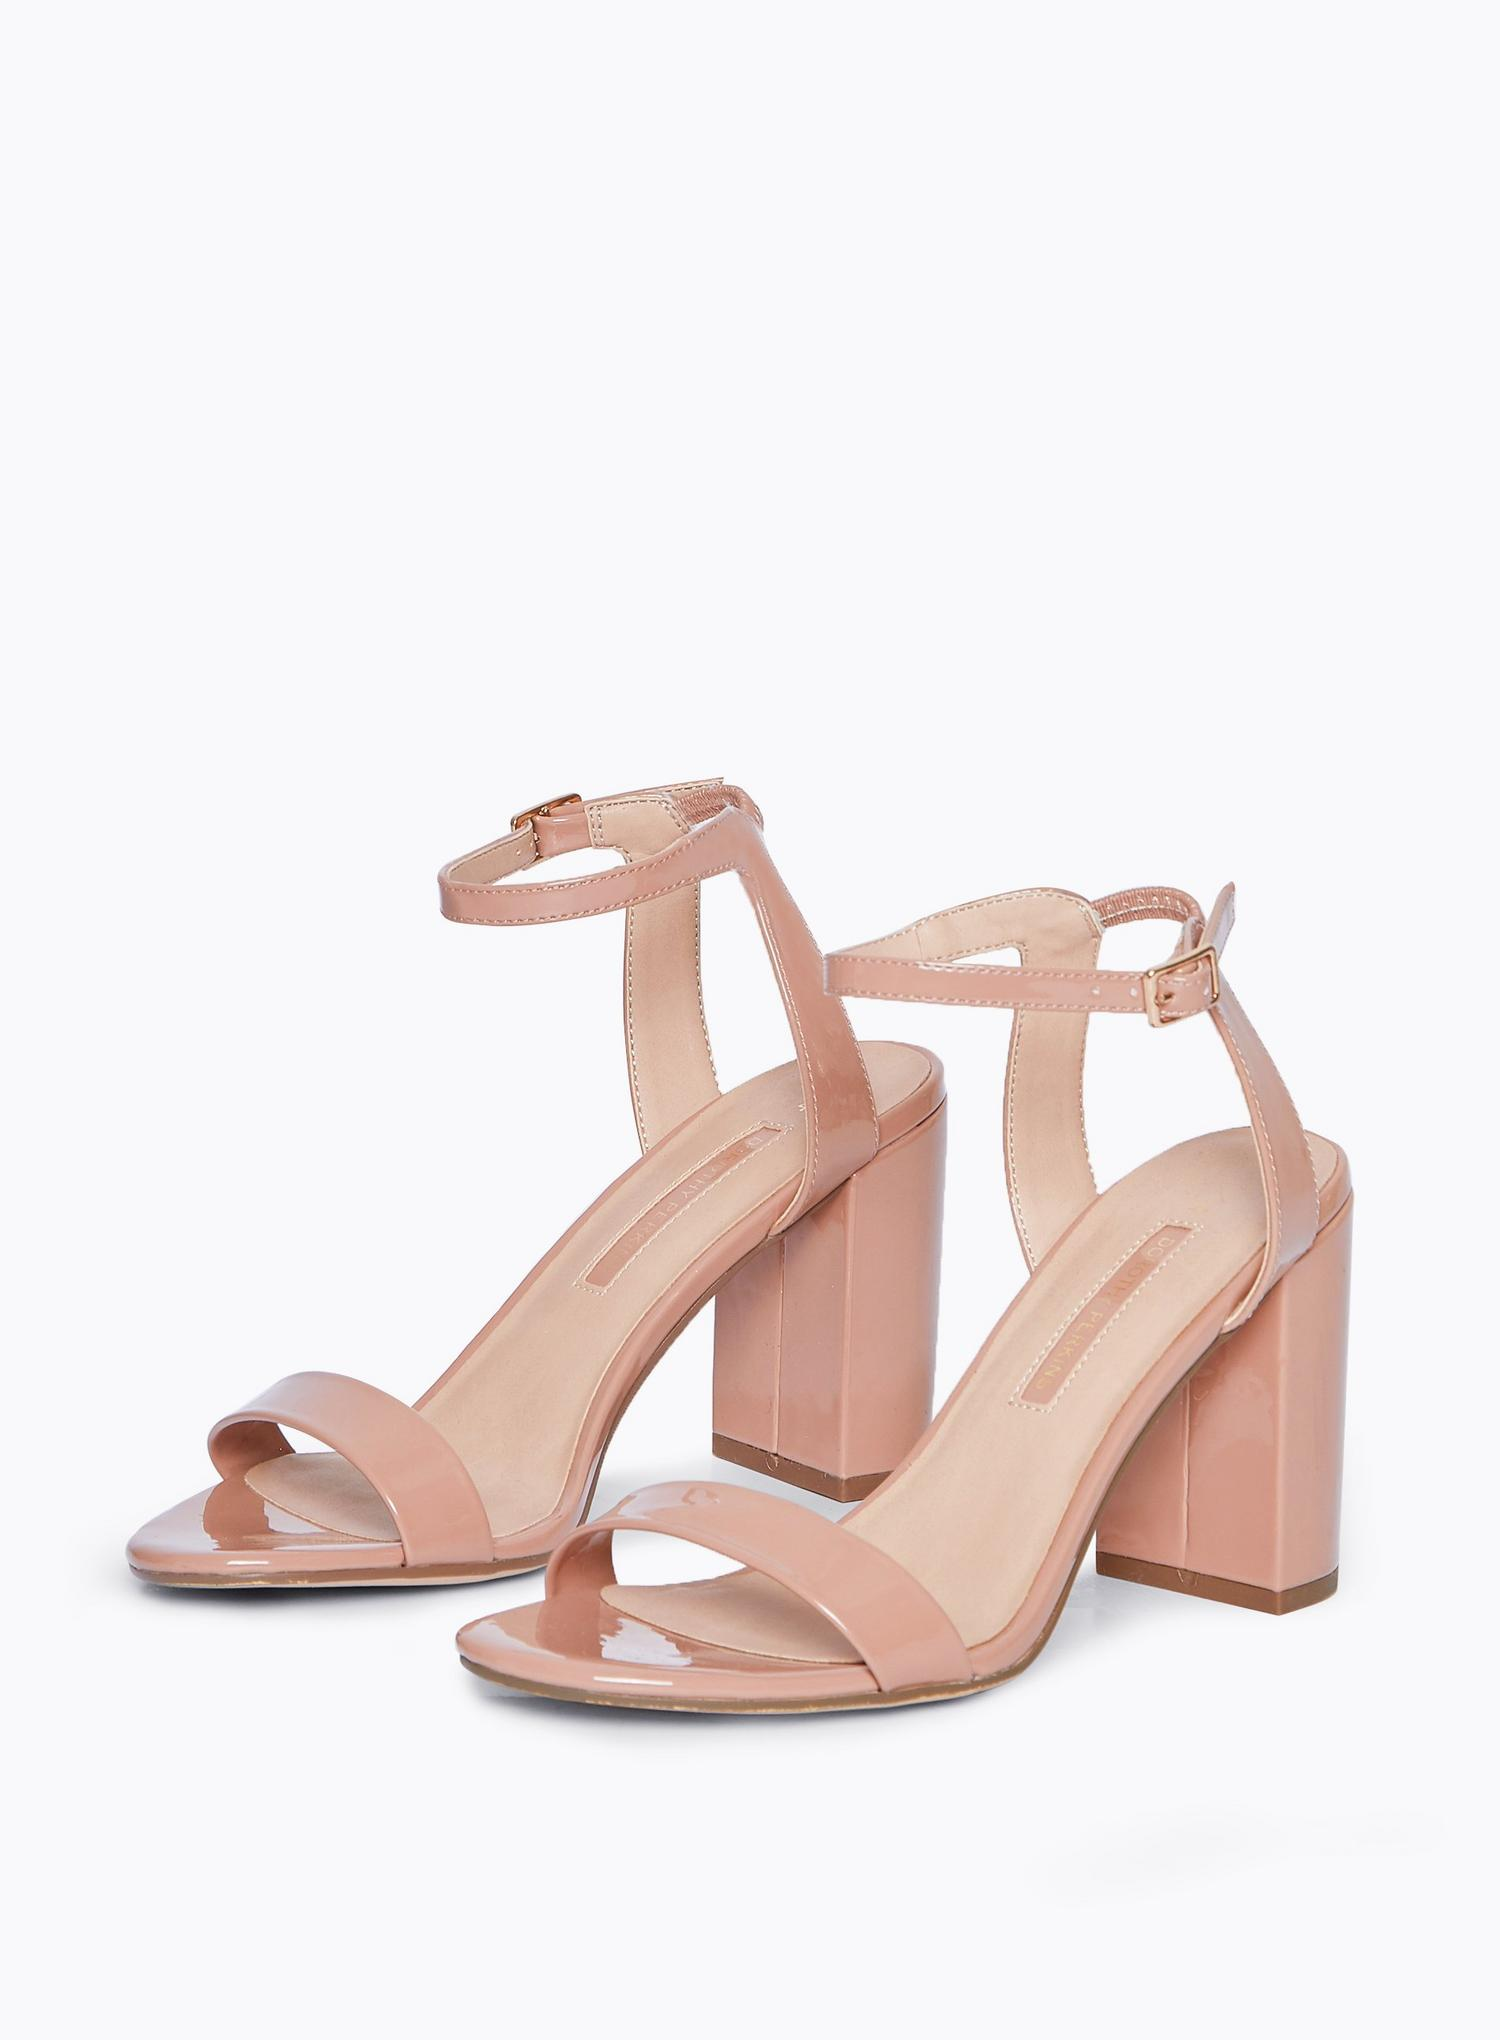 153 Blush Shimmer Two Part Heeled Sandals image number 1